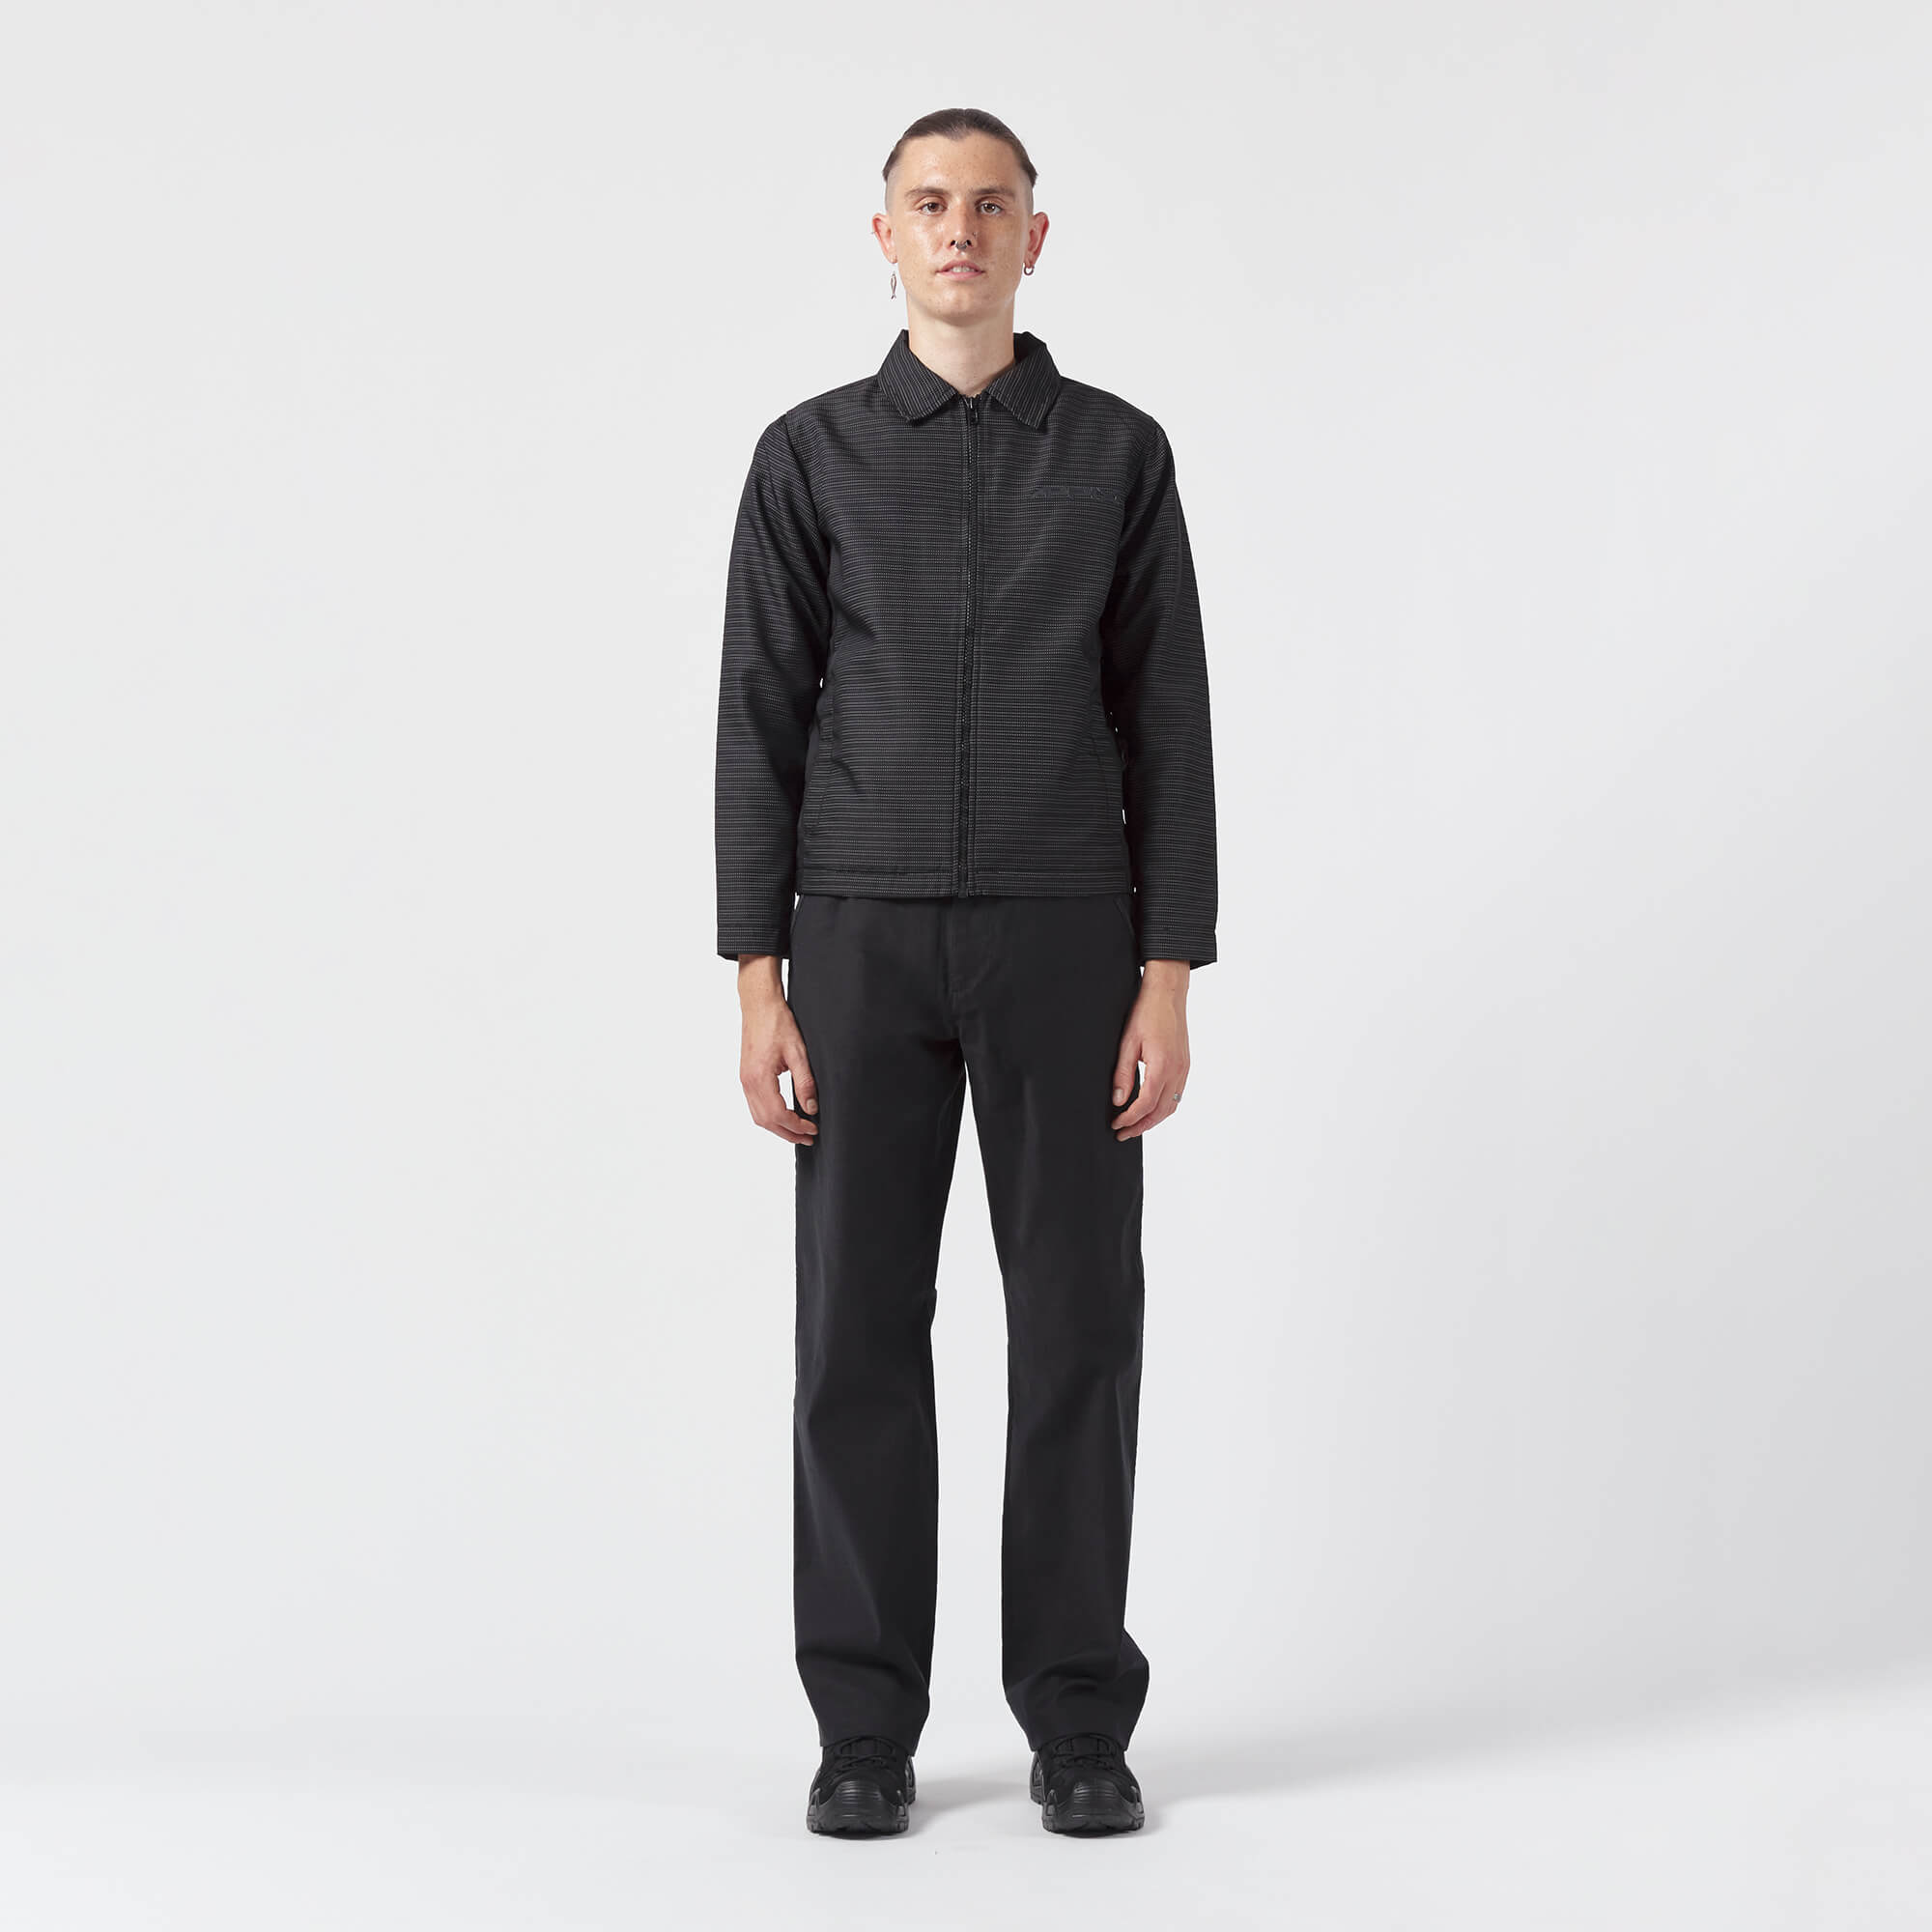 AFFIX WORKS AFFXWRKS VISIBILITY COACH JACKET BLACK